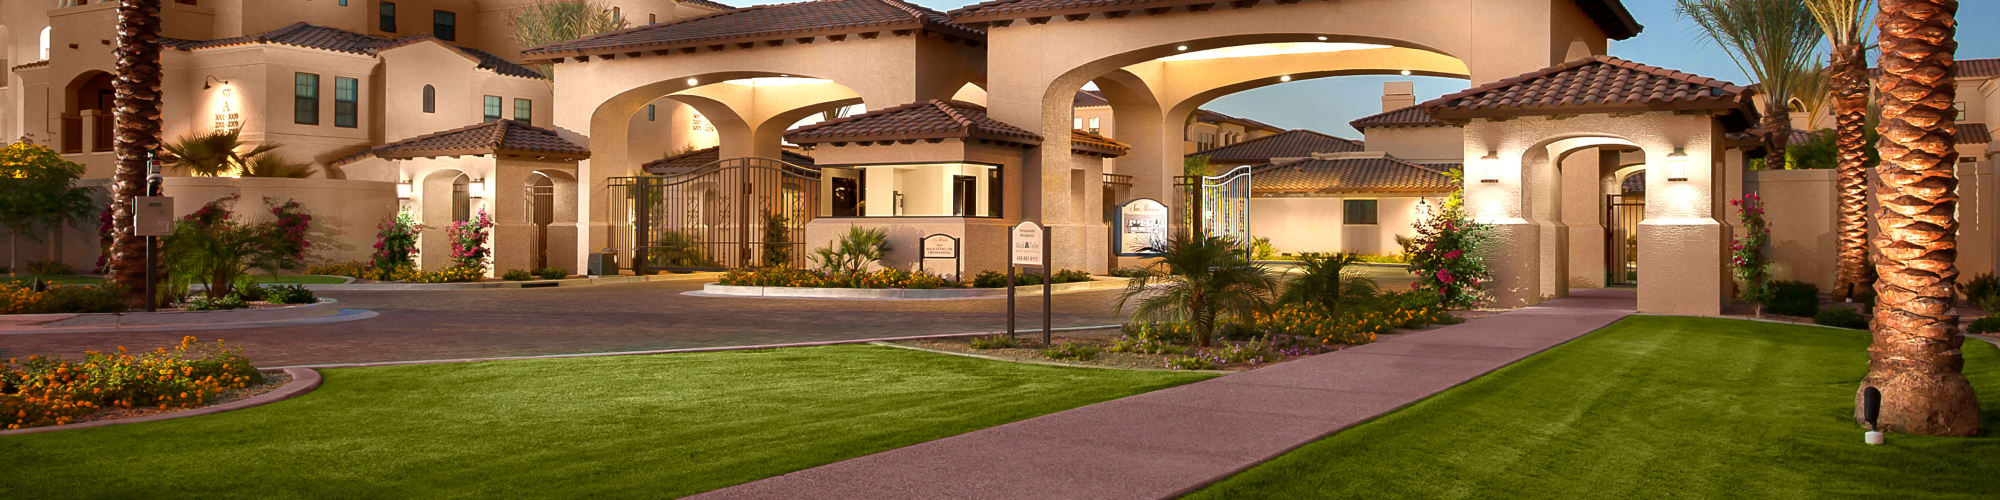 Virtual tour of San Marquis in Tempe, Arizona